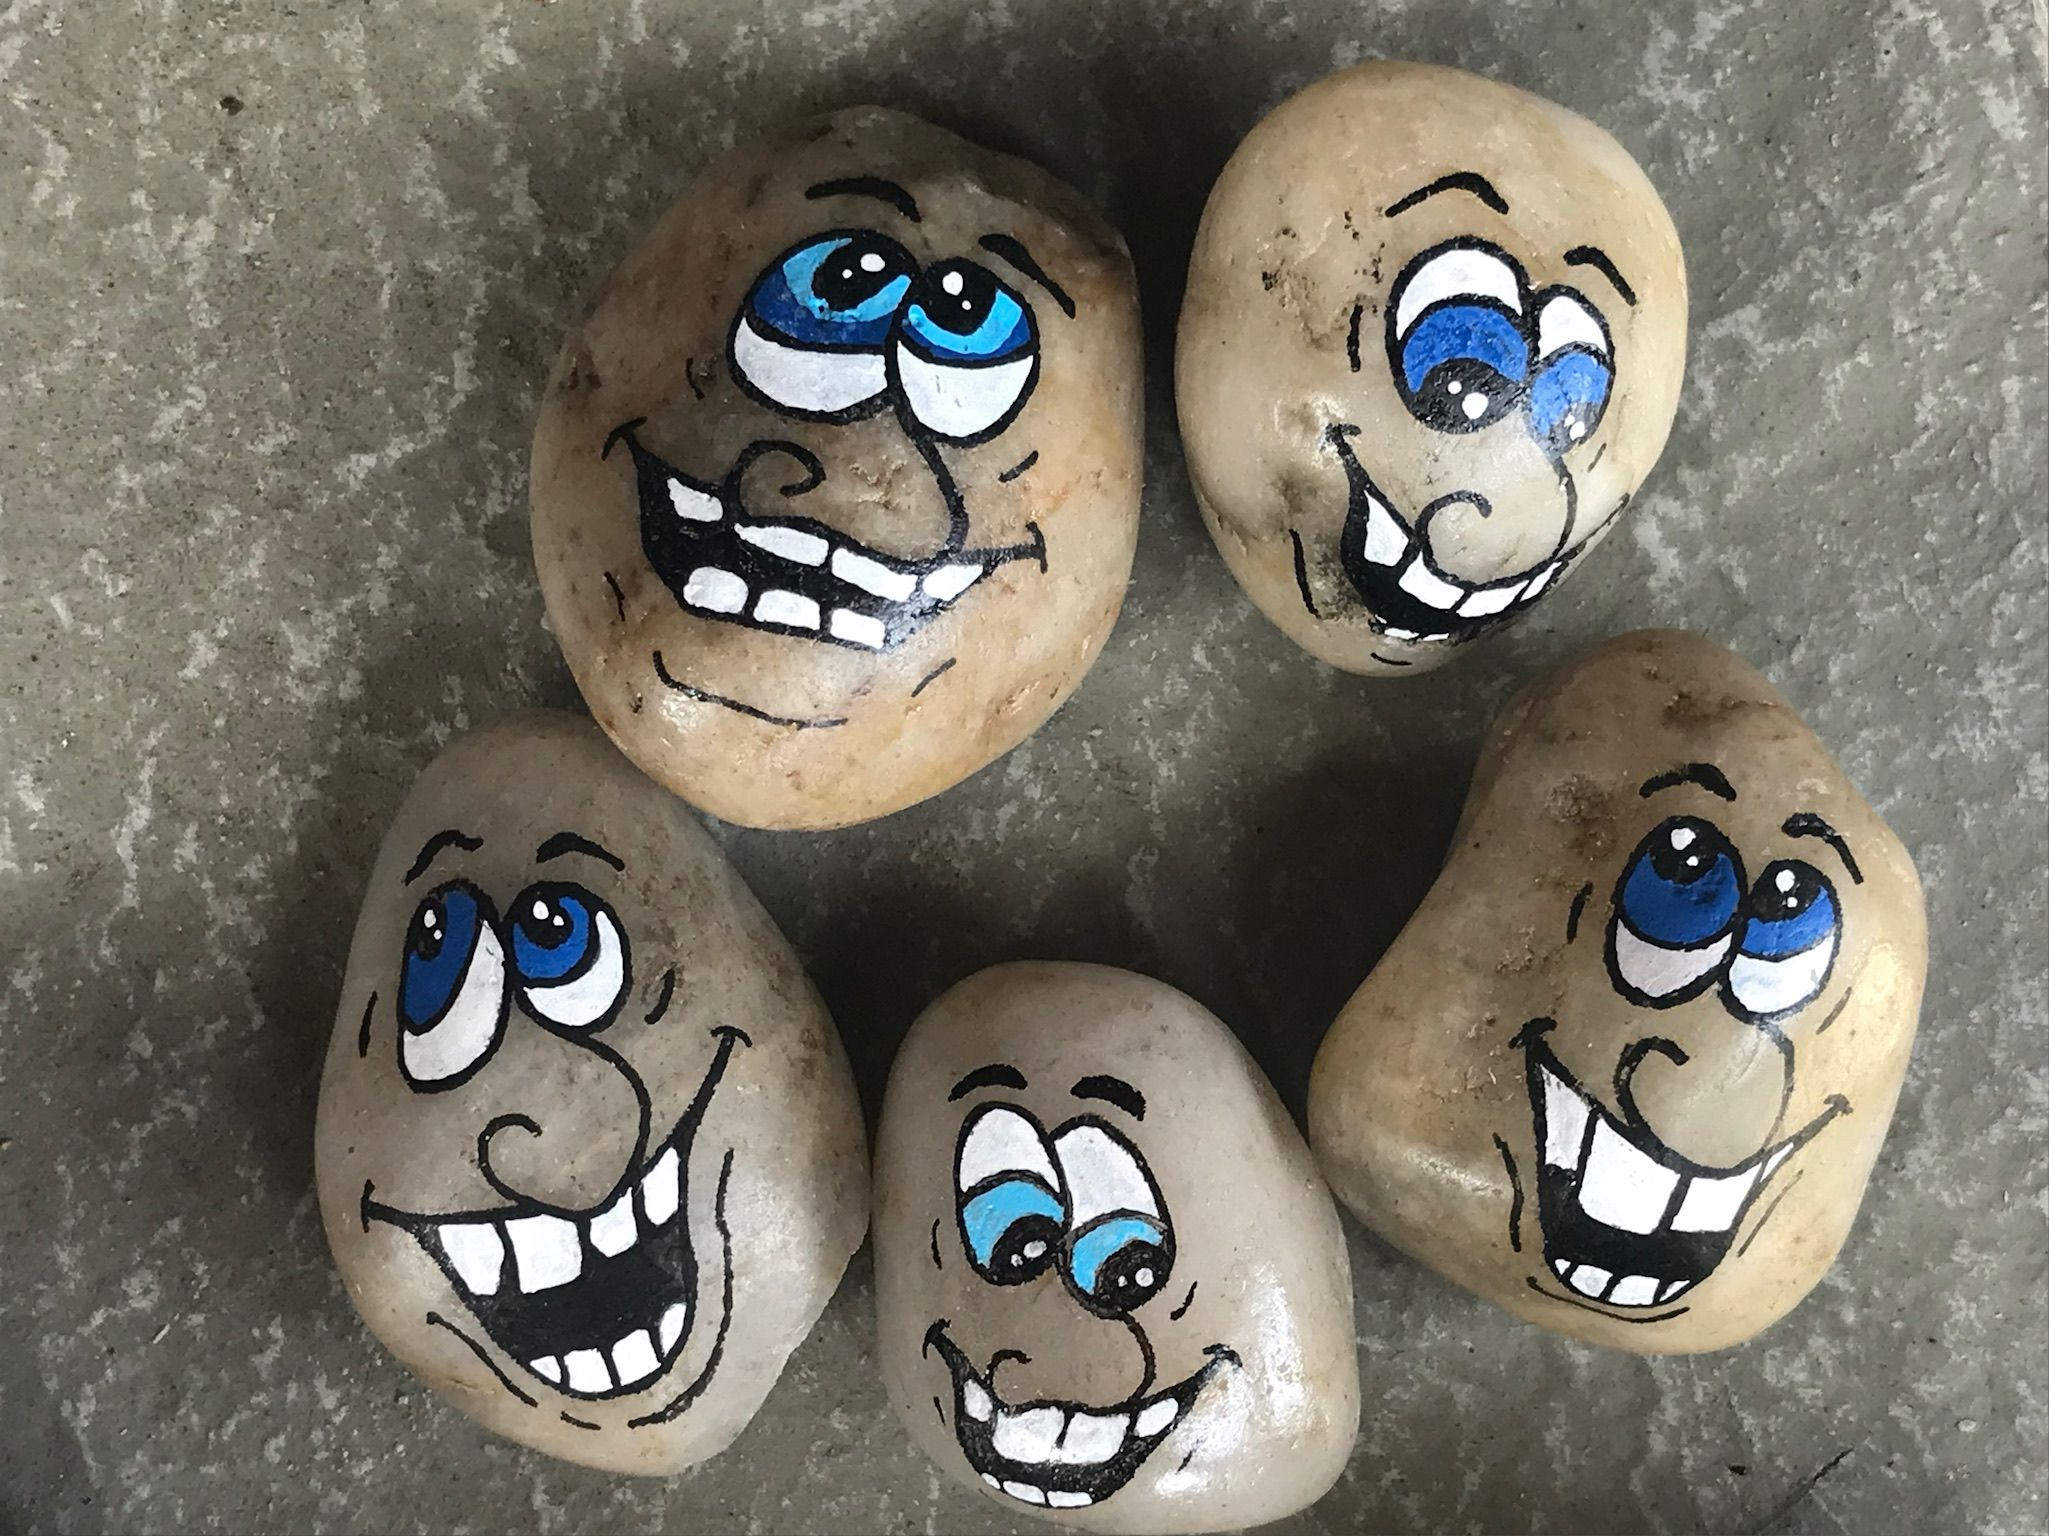 Painted Rocks Funny Faces Painted By Carrie Freeman Painted Rocks Funny Paintings Mandala Painted Rocks